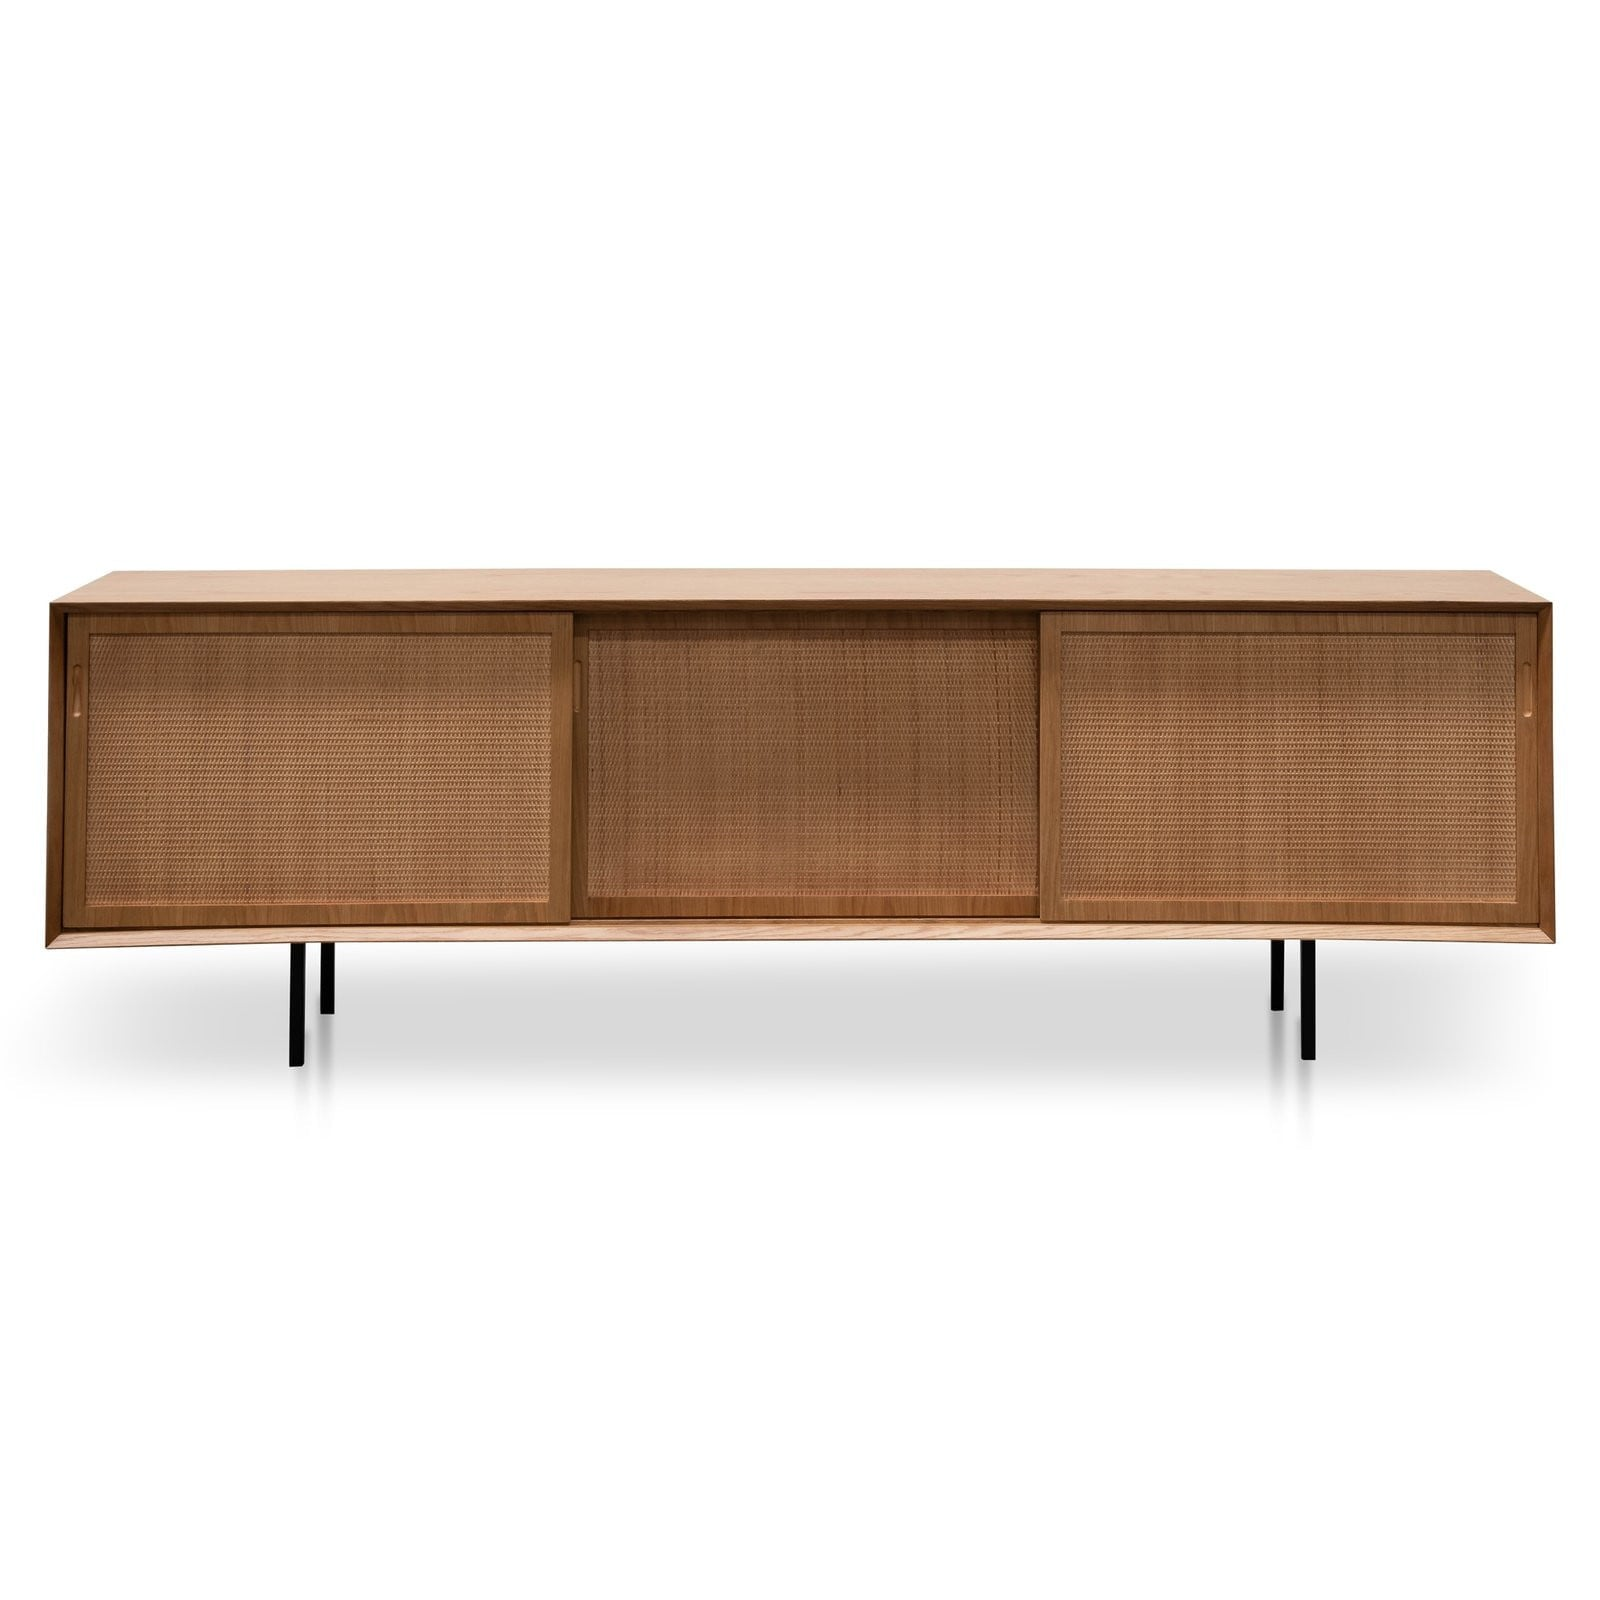 Montana Rattan Entertainment Unit Natural | Attica House Luxury Furniture Sydney